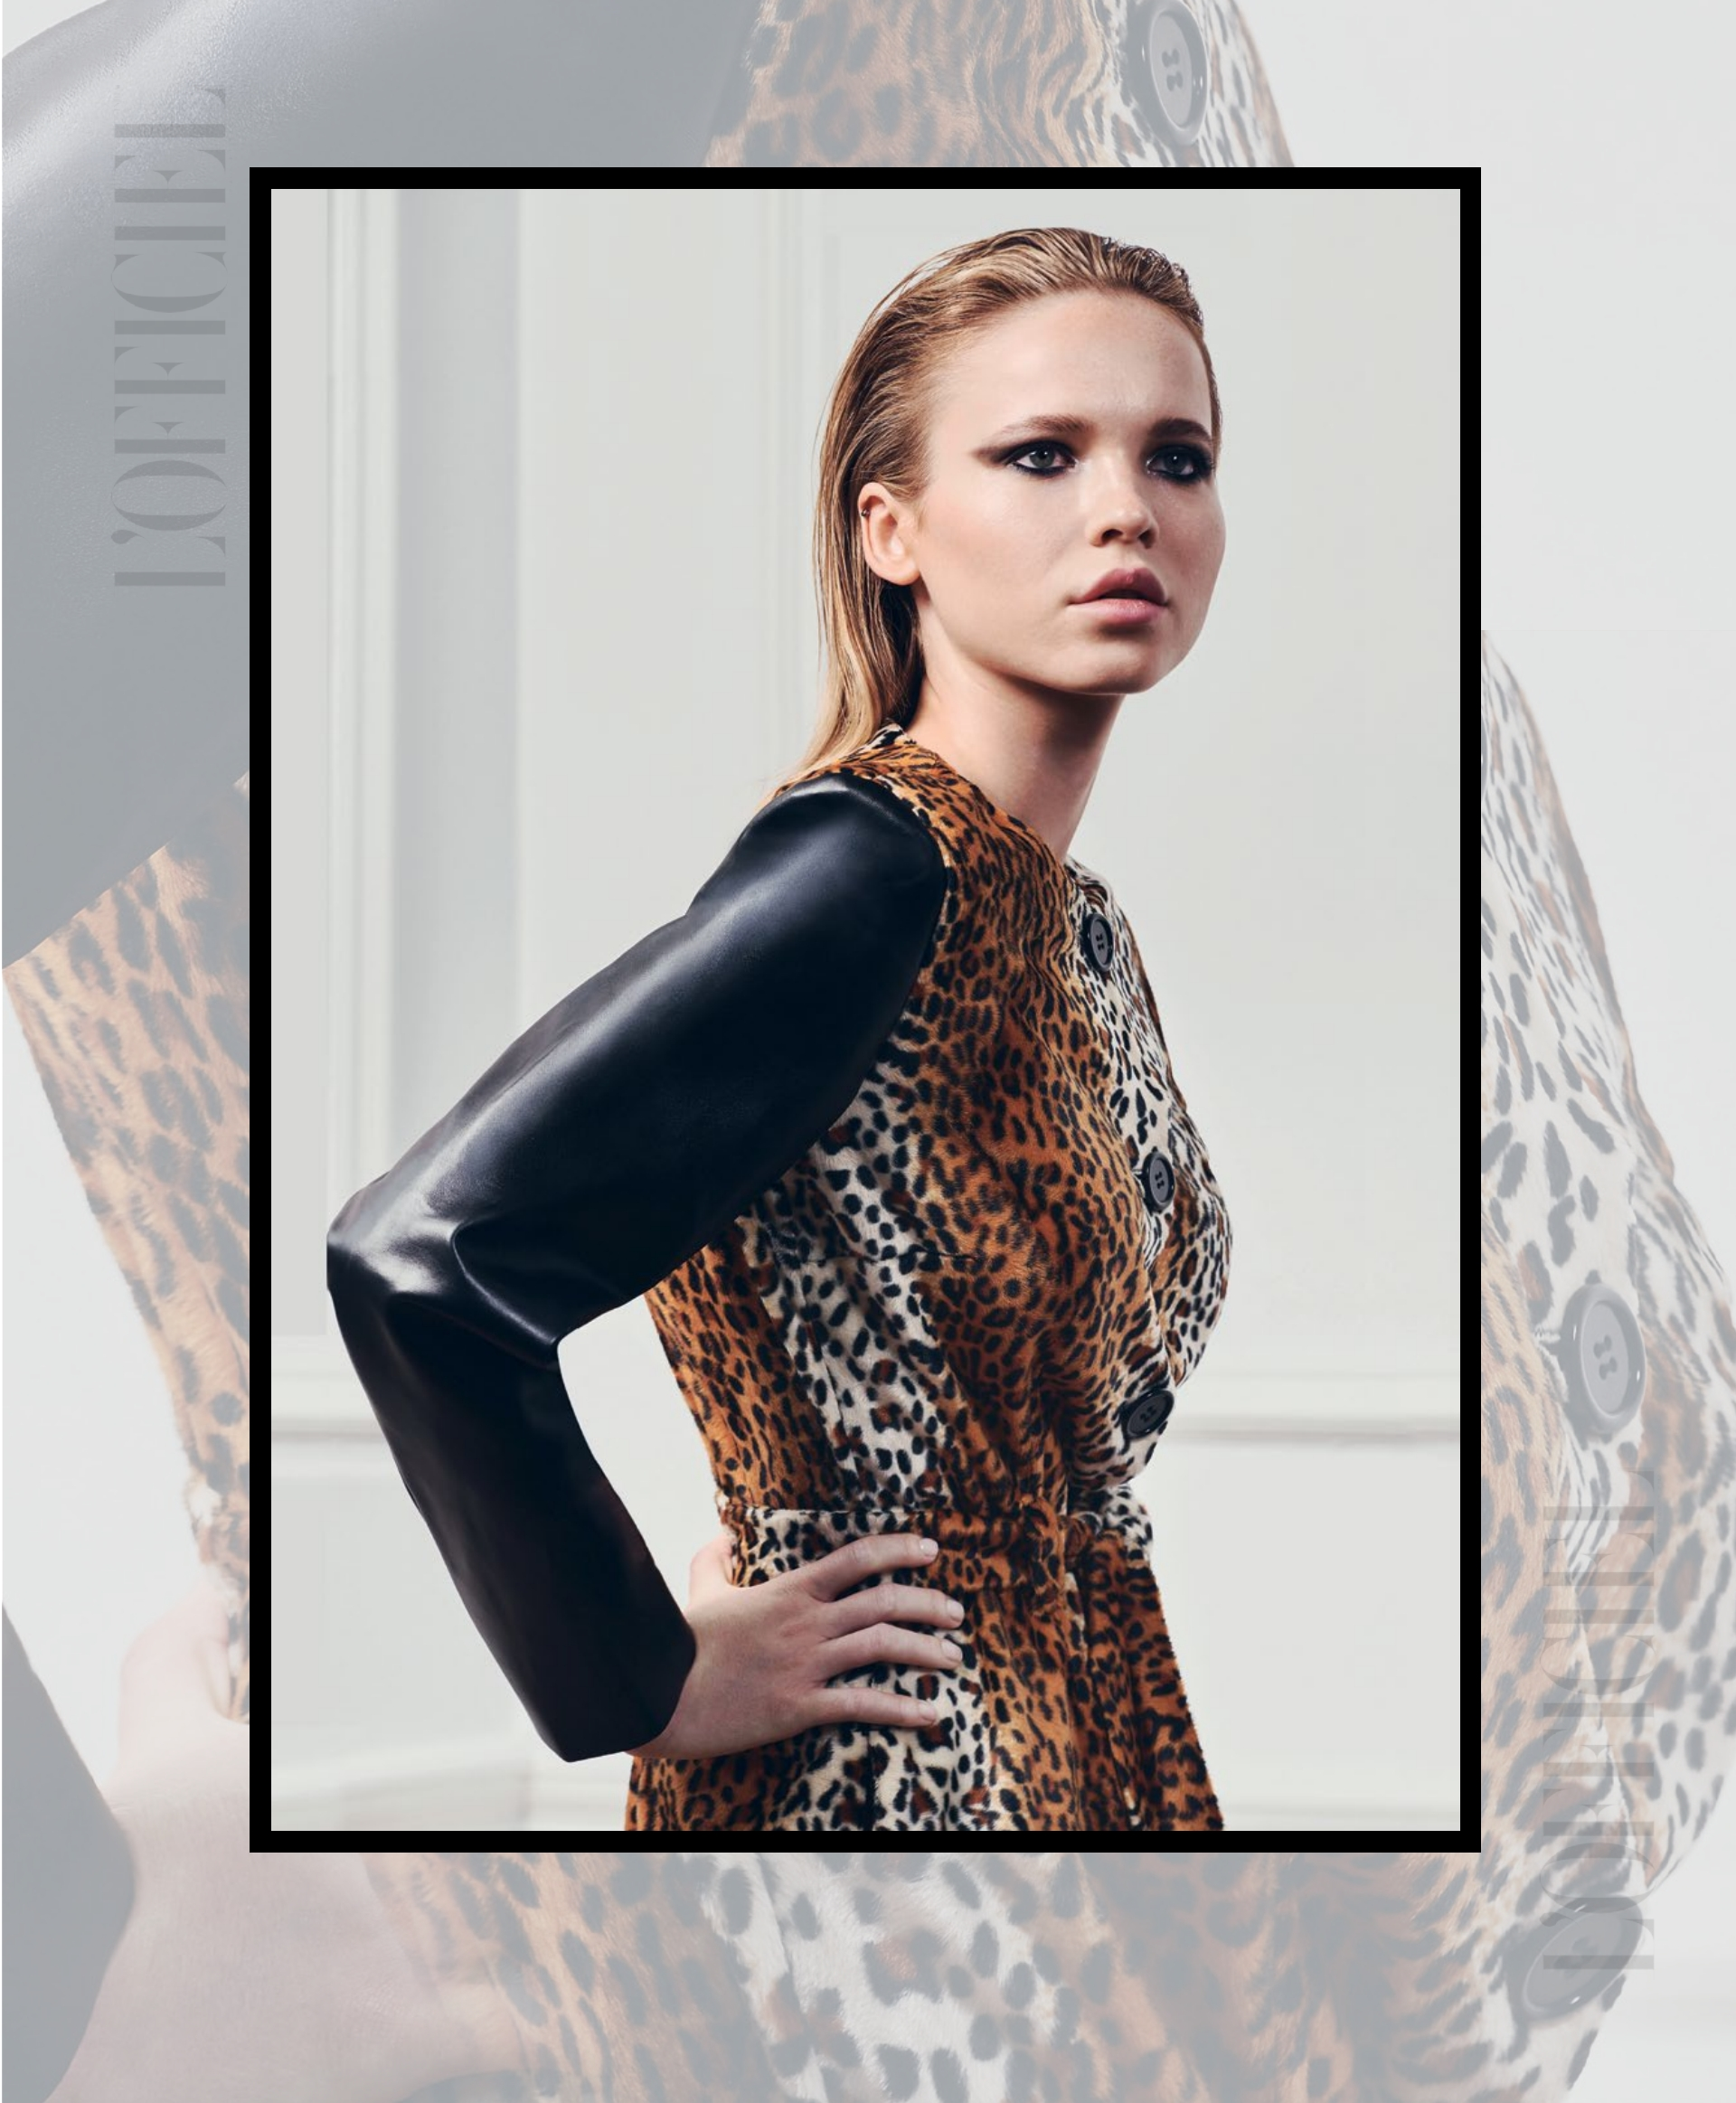 L'Officiel India features fashion designer Tomasz Kociuba animal print coat with faux leather